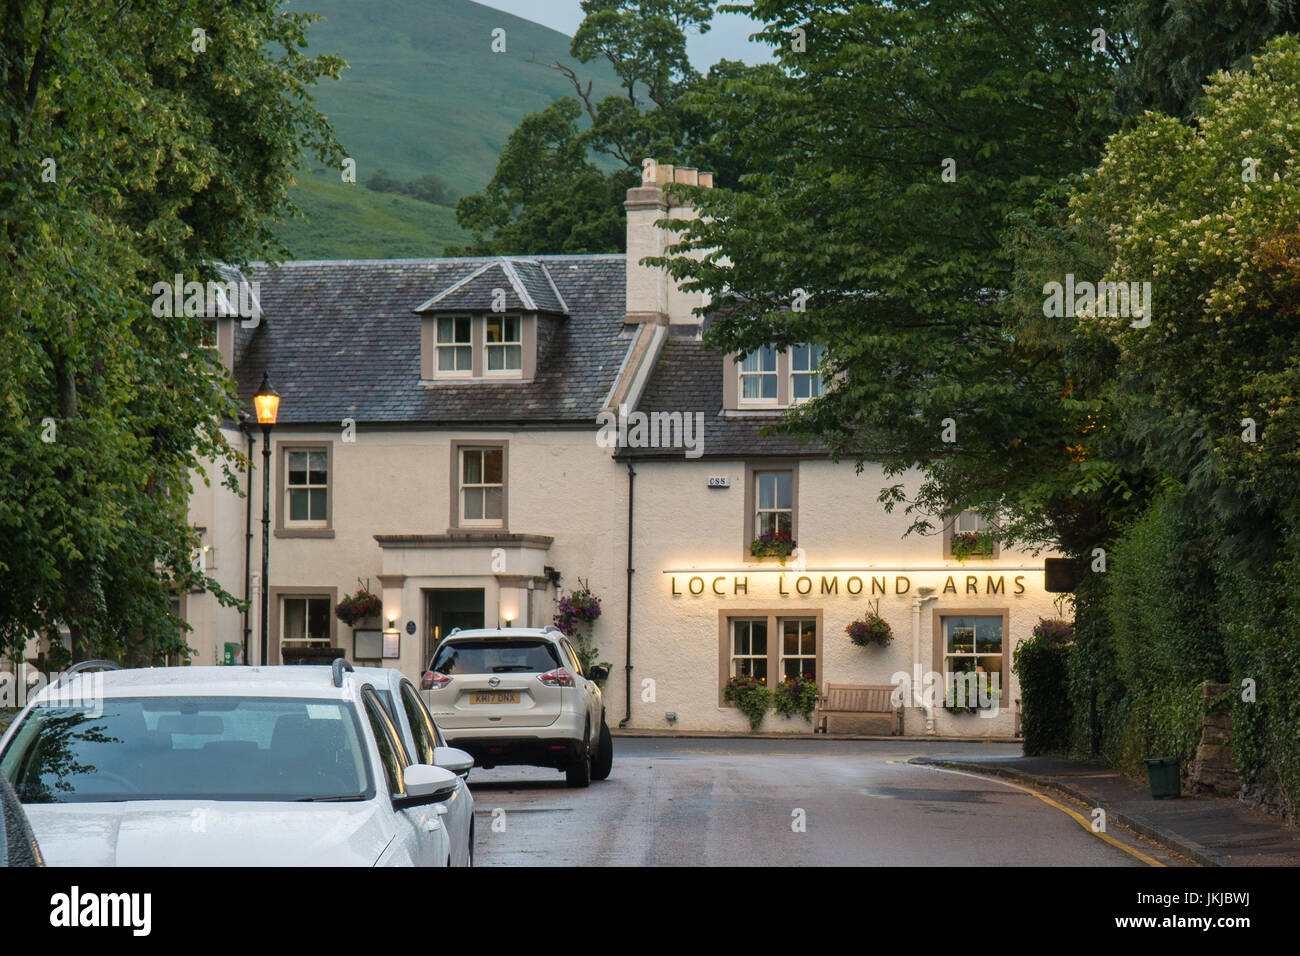 Loch Lomond Arms Hotel, Country Pub and Hotel, Luss